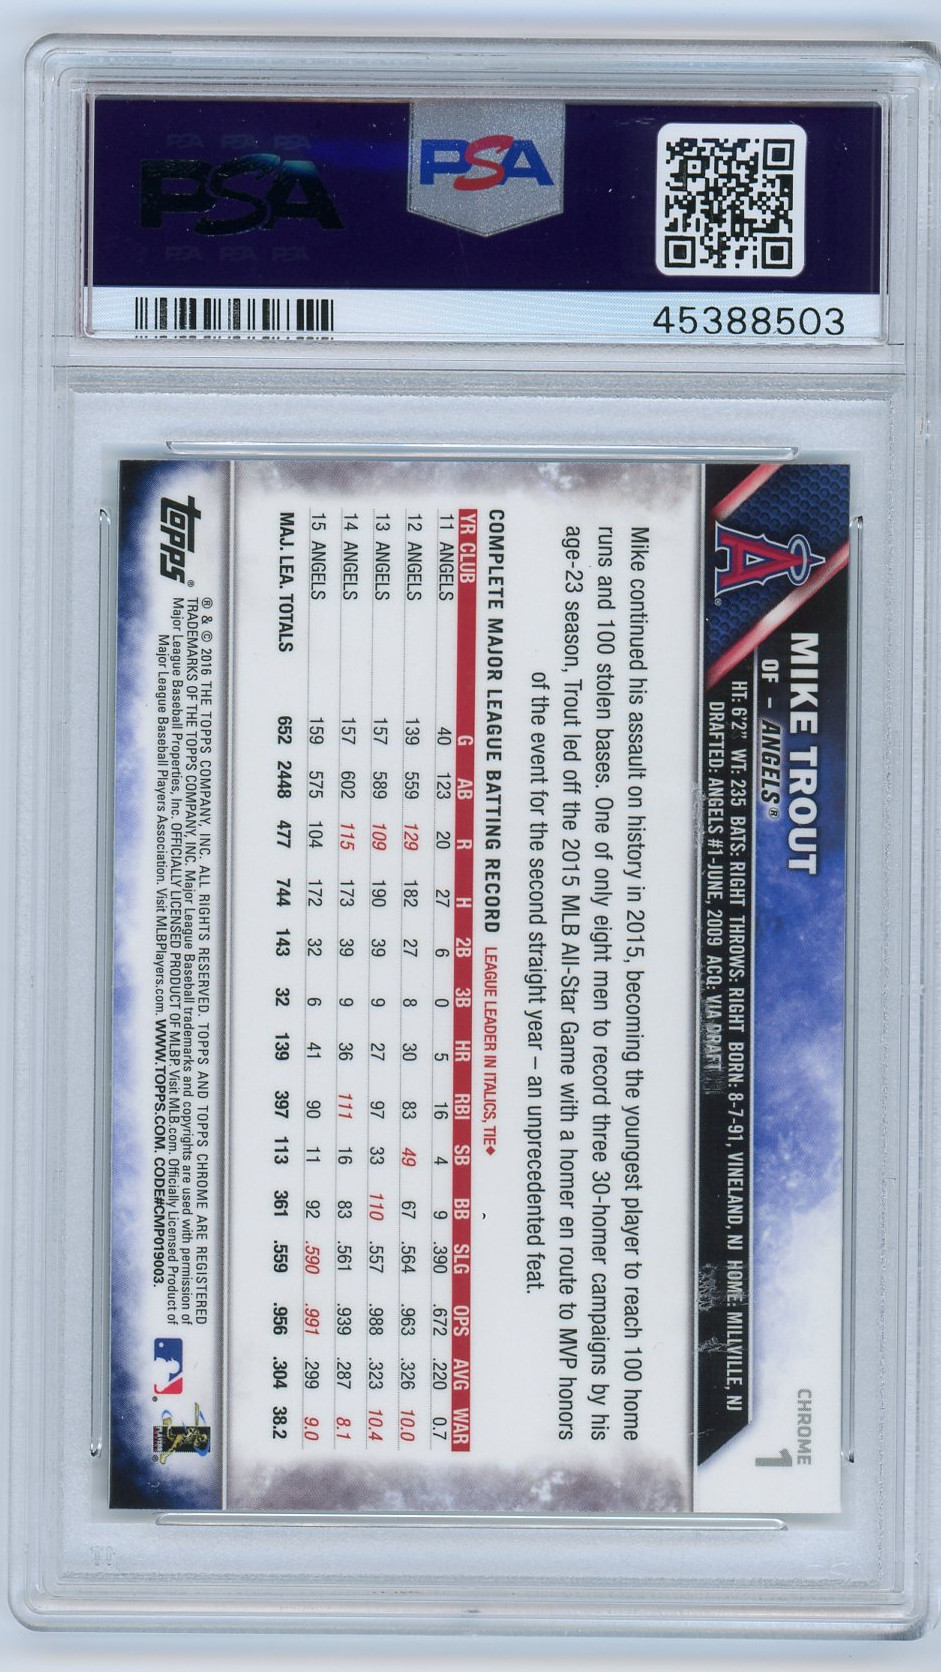 Mike Trout Los Angeles Angels 2016 Topps Chrome Jumping #1 Baseball Card Graded PSA 10 GEM MINT